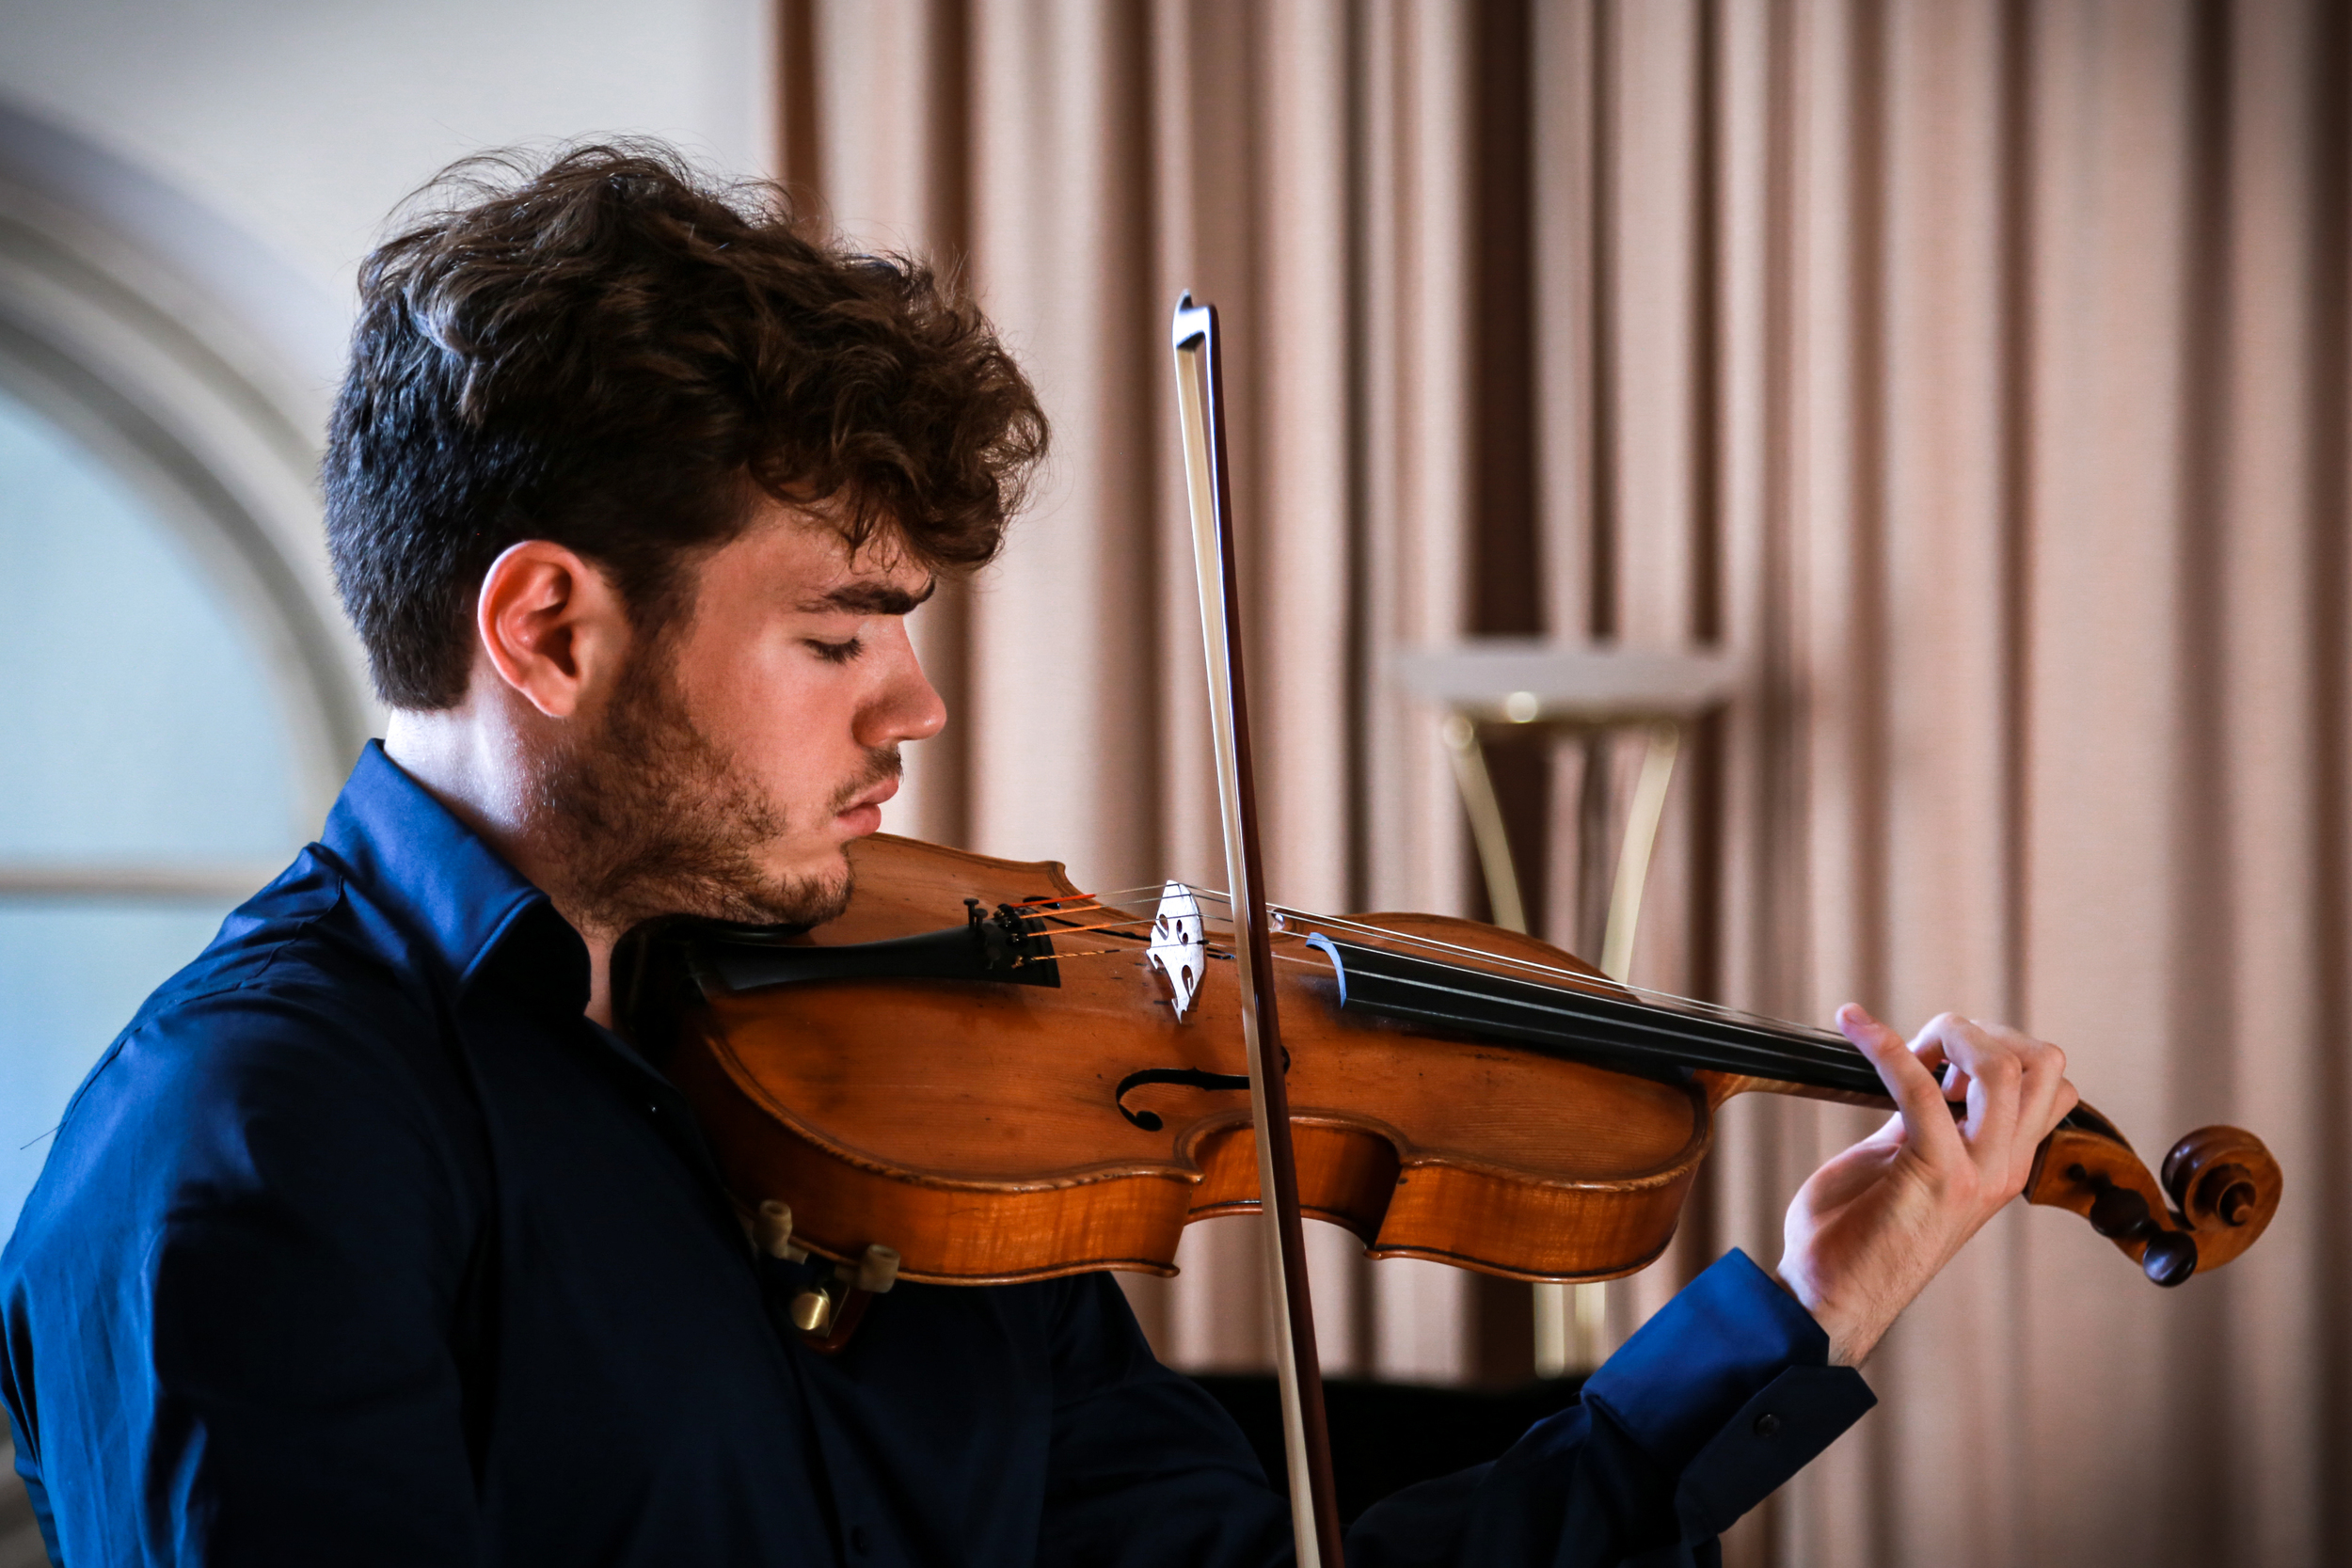 Thursday, 20th February - Timothy Ridout - violahttp://www.timothyridout.comFuchs: Selection of Fantasy Études for solo violaJS Bach/Kodaly: Fantasia Cromatica in D minor BWV 903Hindemith: Sonata for solo viola Op.25 No.1JS Bach: Chaconne from the Partita No.2 in D minor BWV 1004